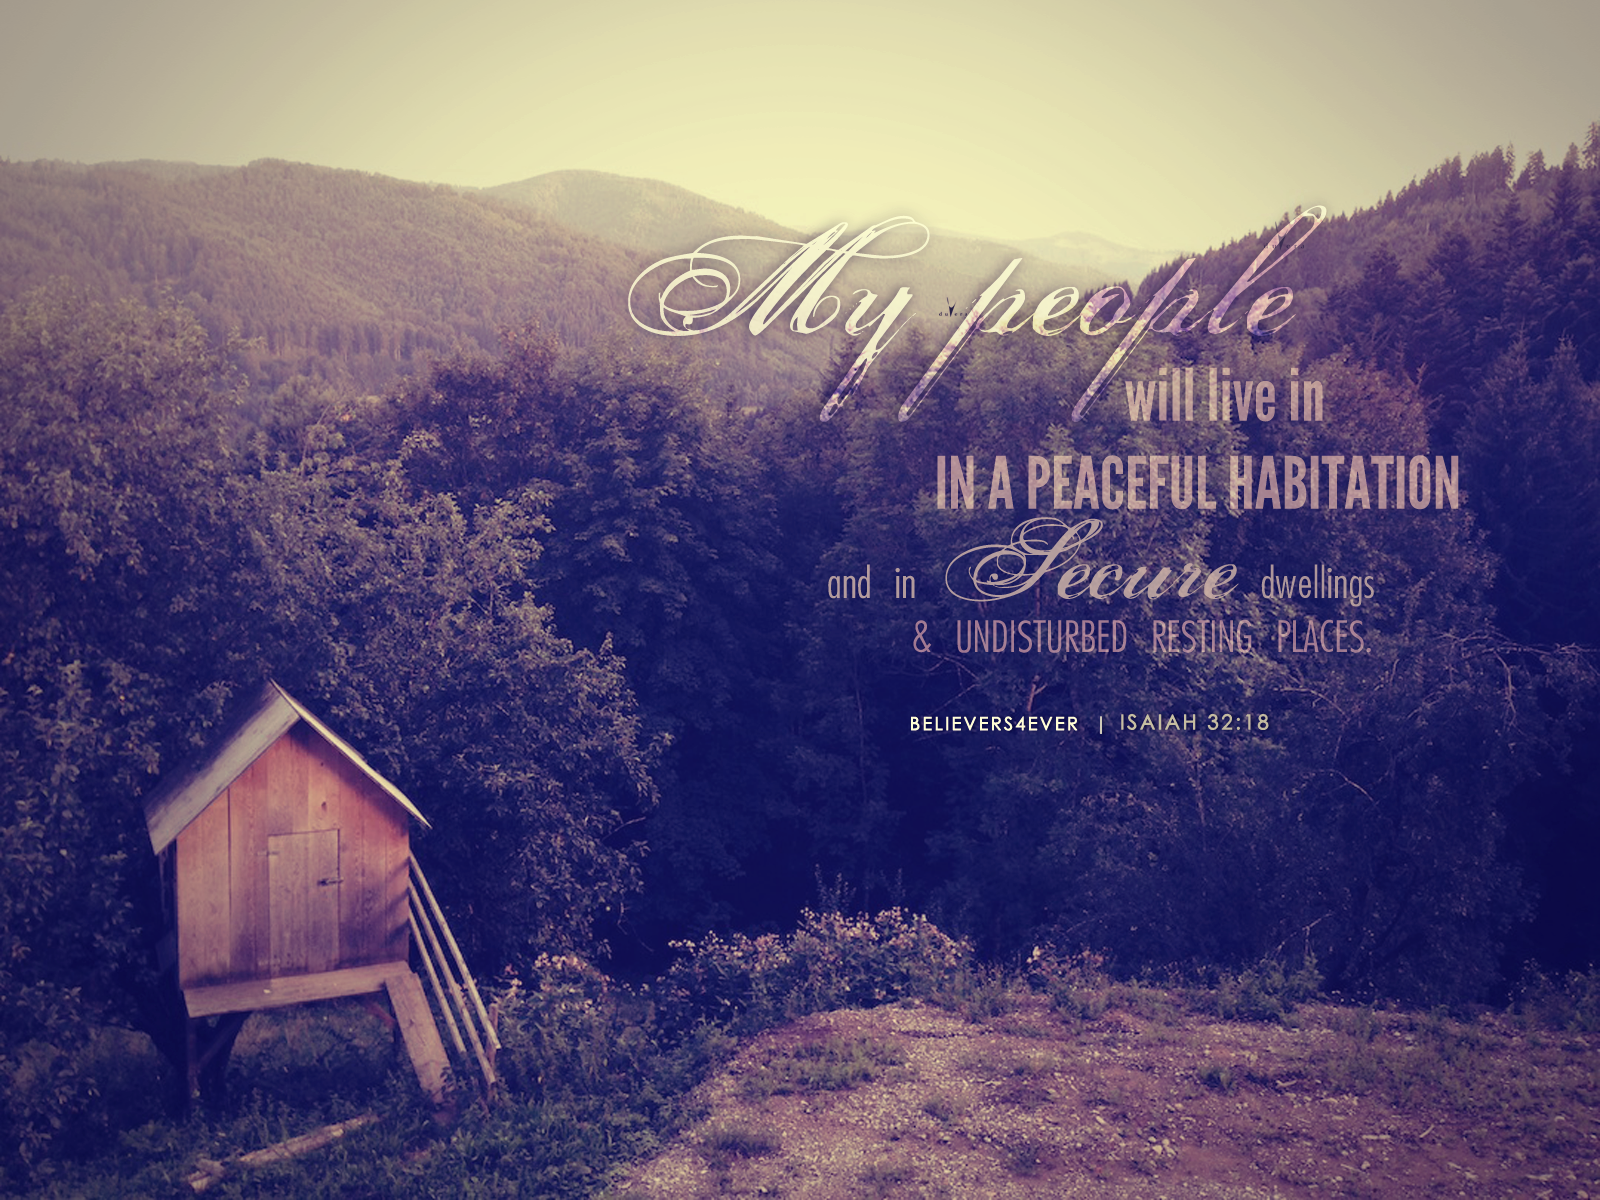 Isaiah 32: 18. My people will live in a peaceful habitation Christian wallpaper